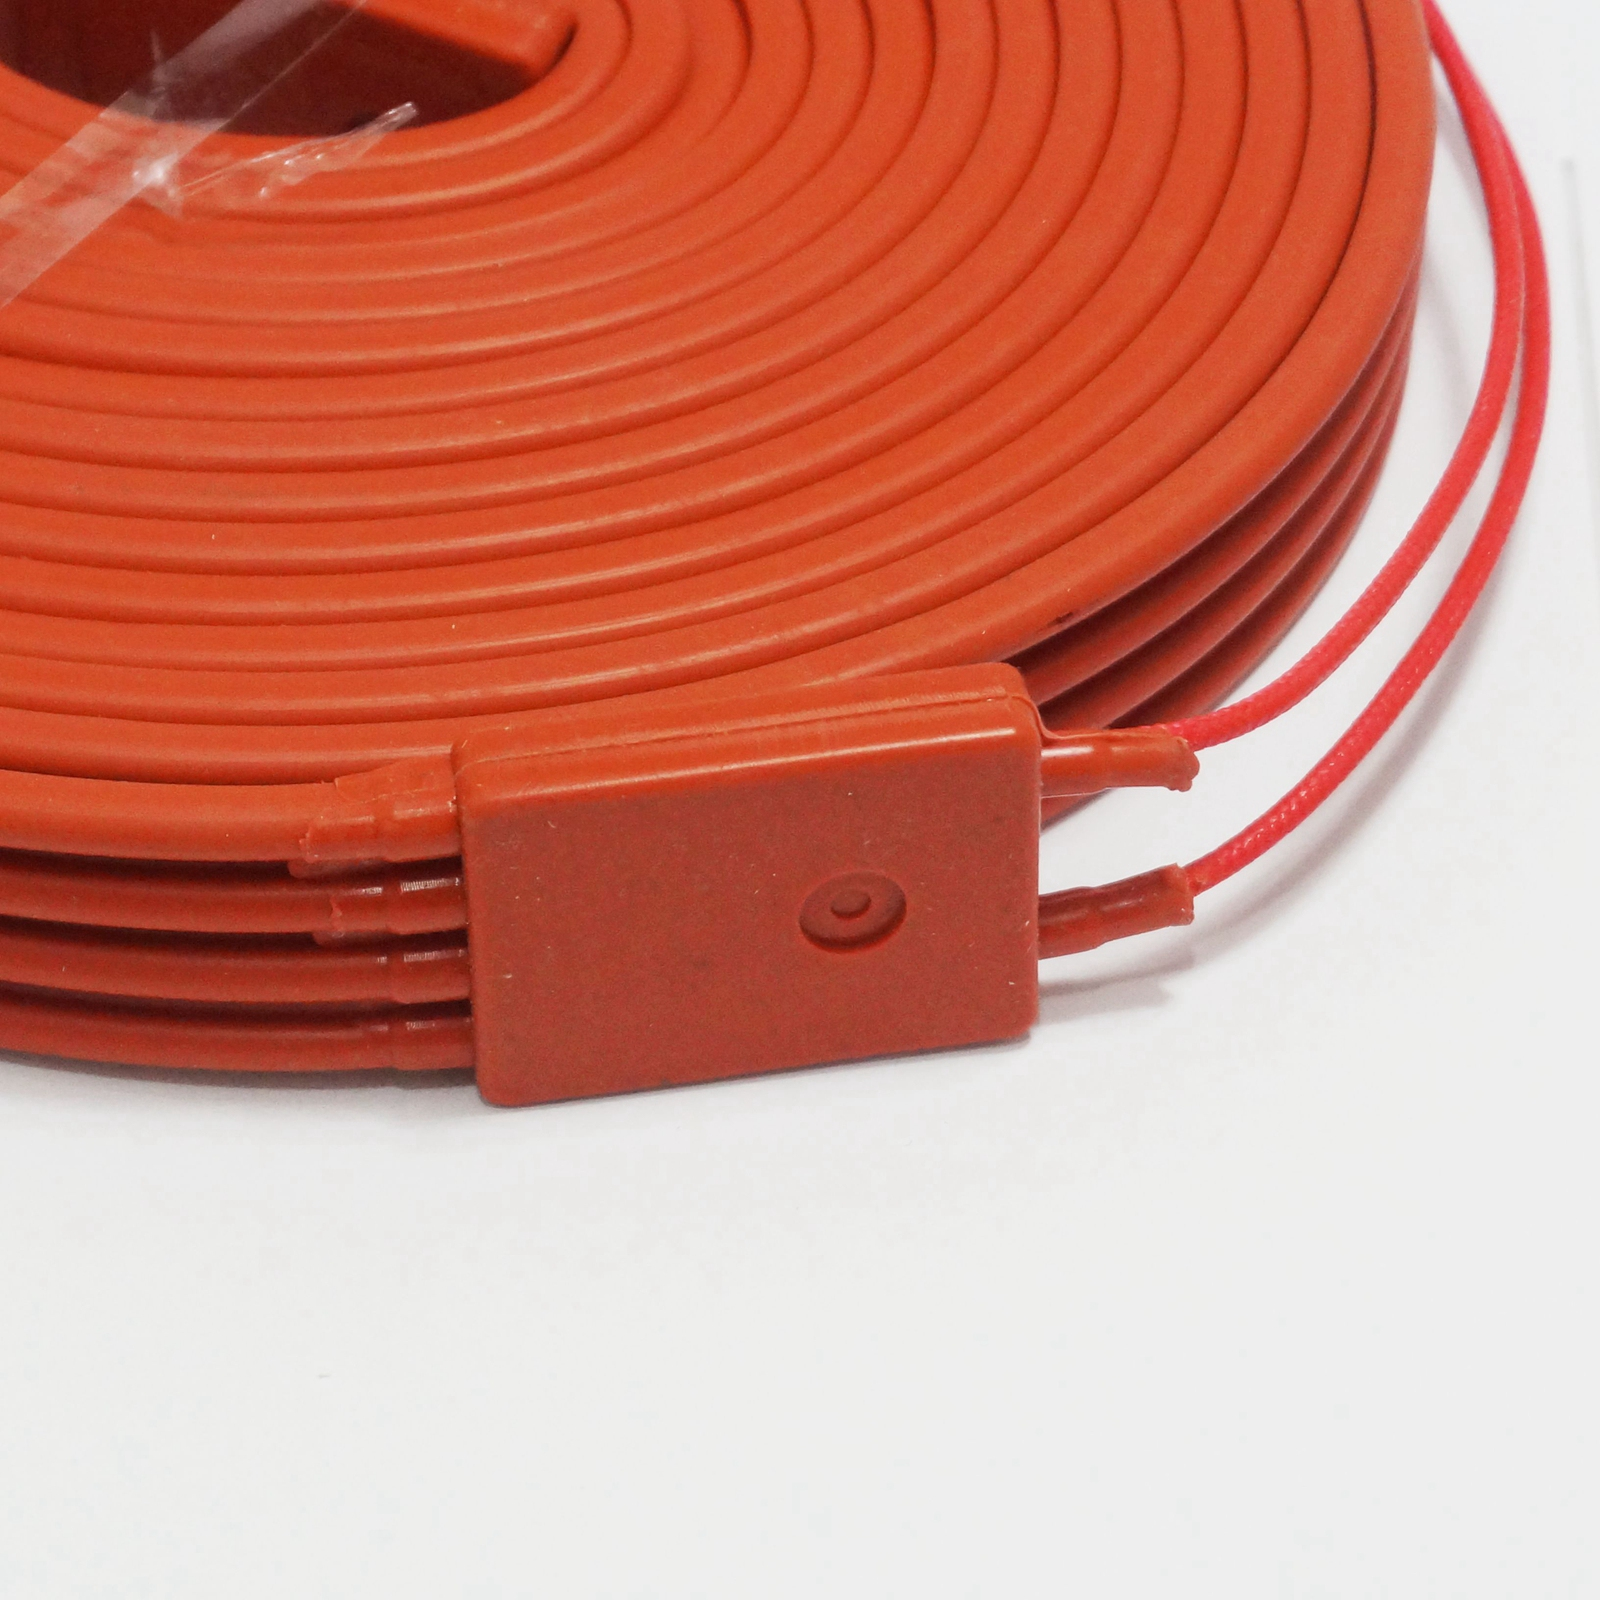 small resolution of 220v ac 25x5000mm 500w waterproof flexible silicone rubber heater heating belt unfreezer for pipeline electrical wires in wires cables from lights